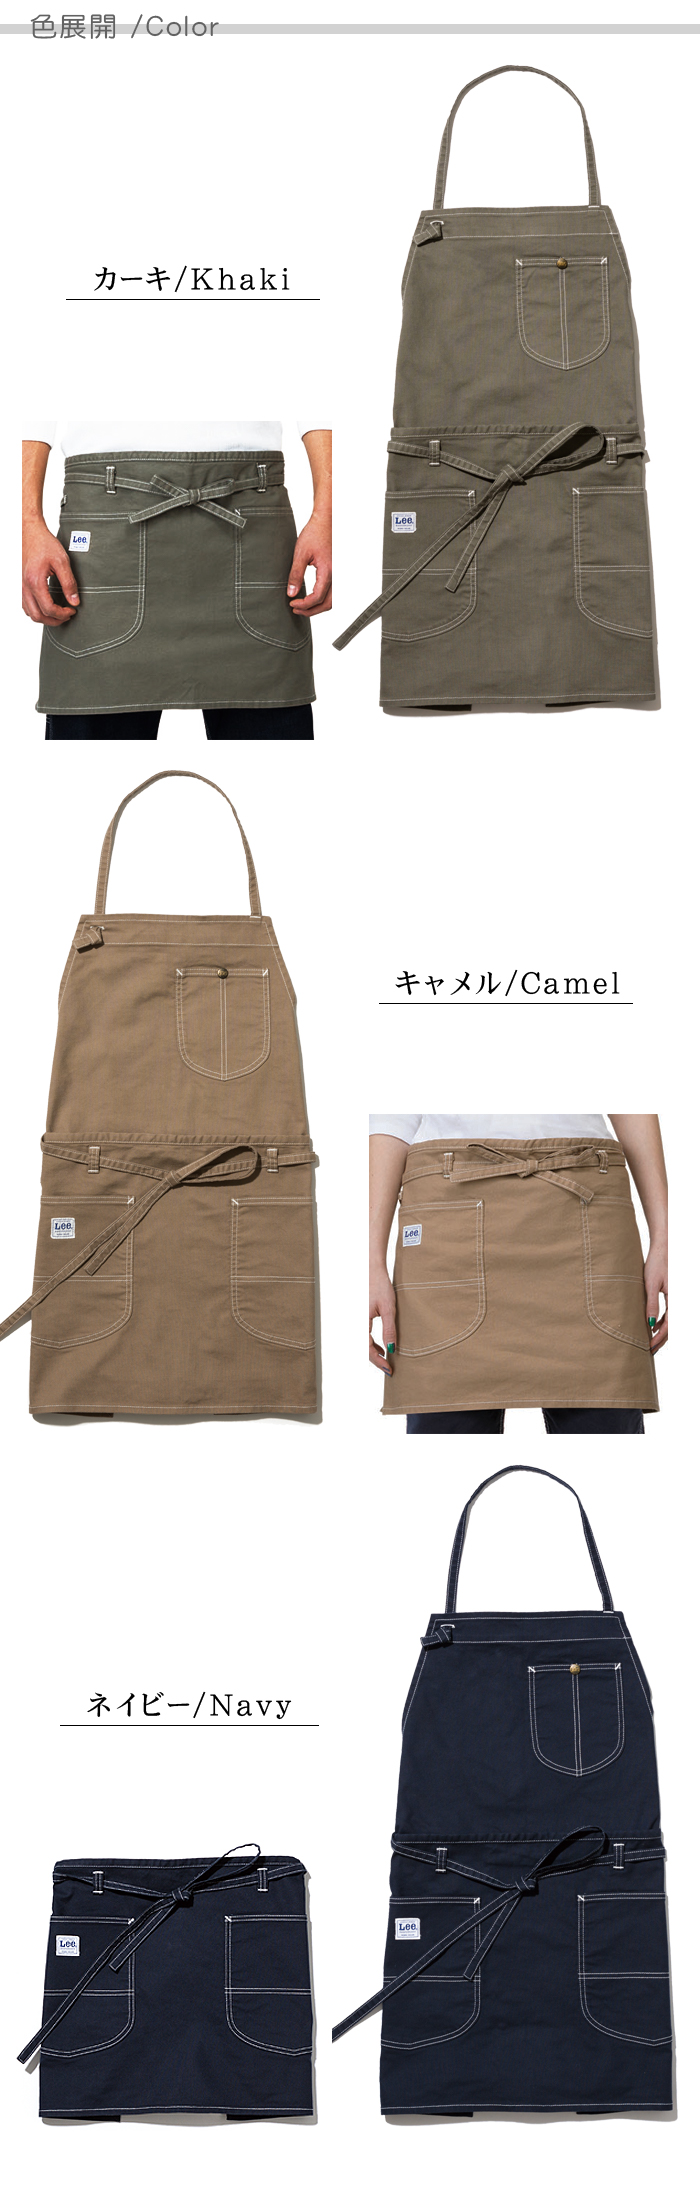 2wayエプロン カフェ飲食店作業用ストレッチ素材の制服 『Lee workwear』(男女兼用) 色展開説明